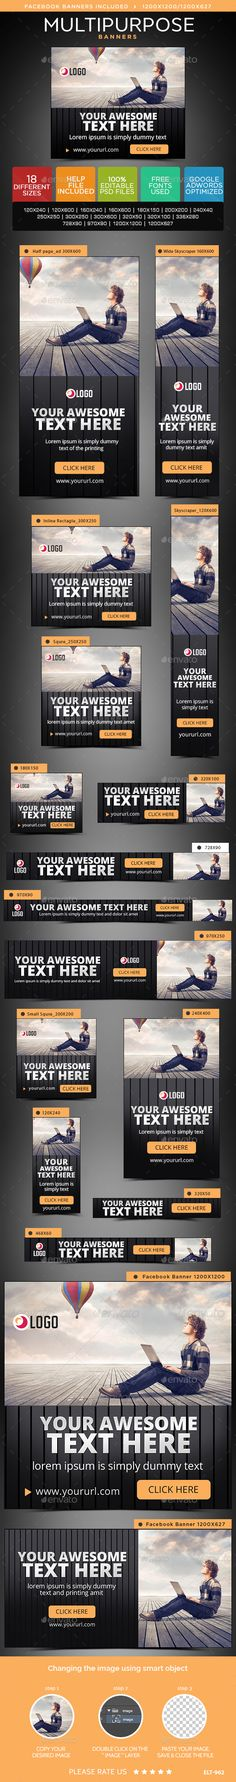 Multipurpose Web Banners Template PSD #design #ads Download: http://graphicriver.net/item/multipurpose-banners/14067668?ref=ksioks